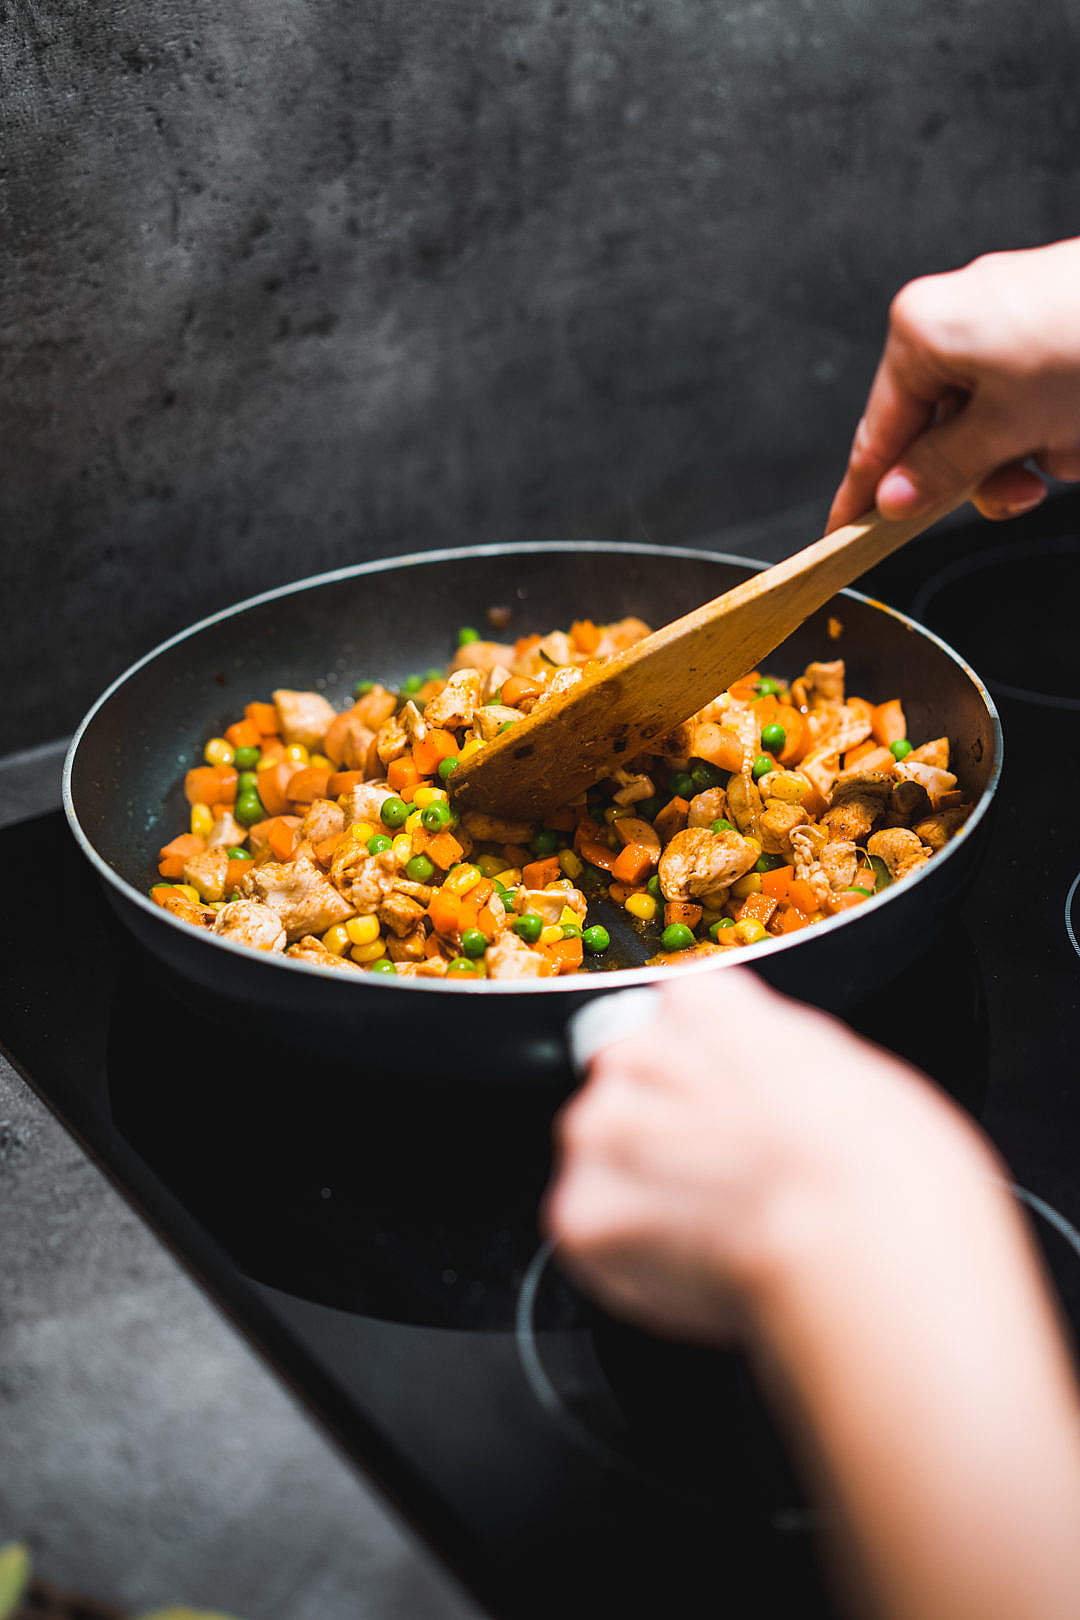 Download Chicken with Mixed Vegetables in a Pan FREE Stock Photo